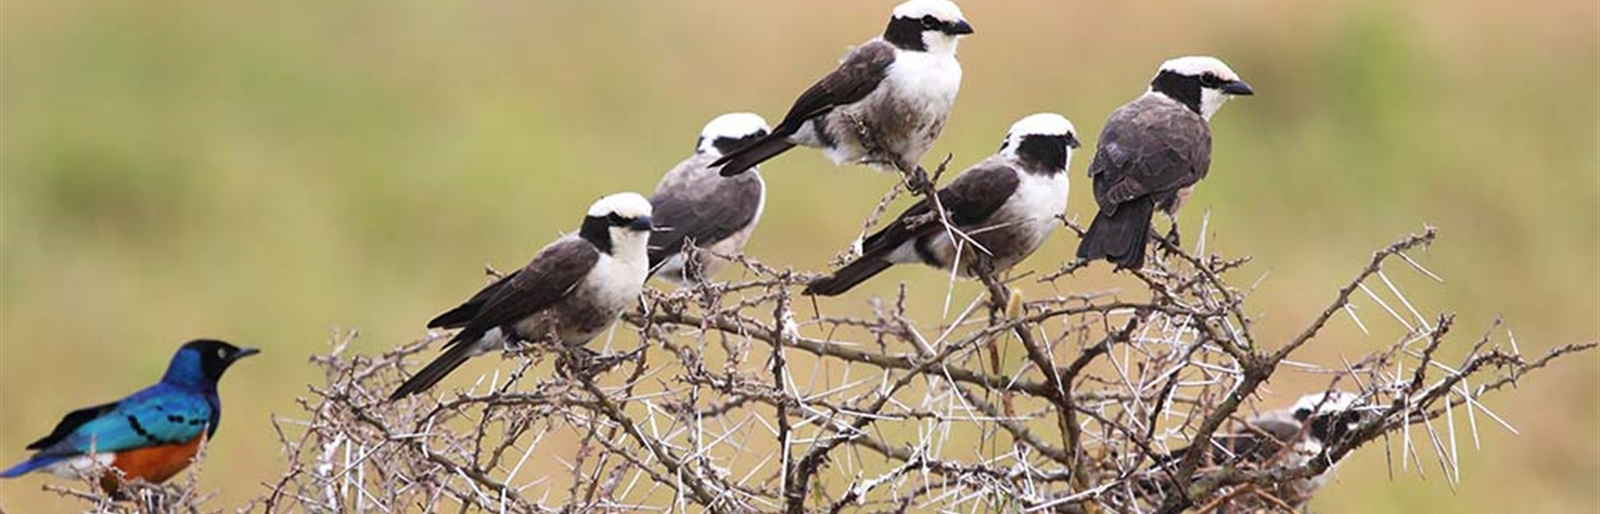 Lively Birding Adventure in the East African National Parks